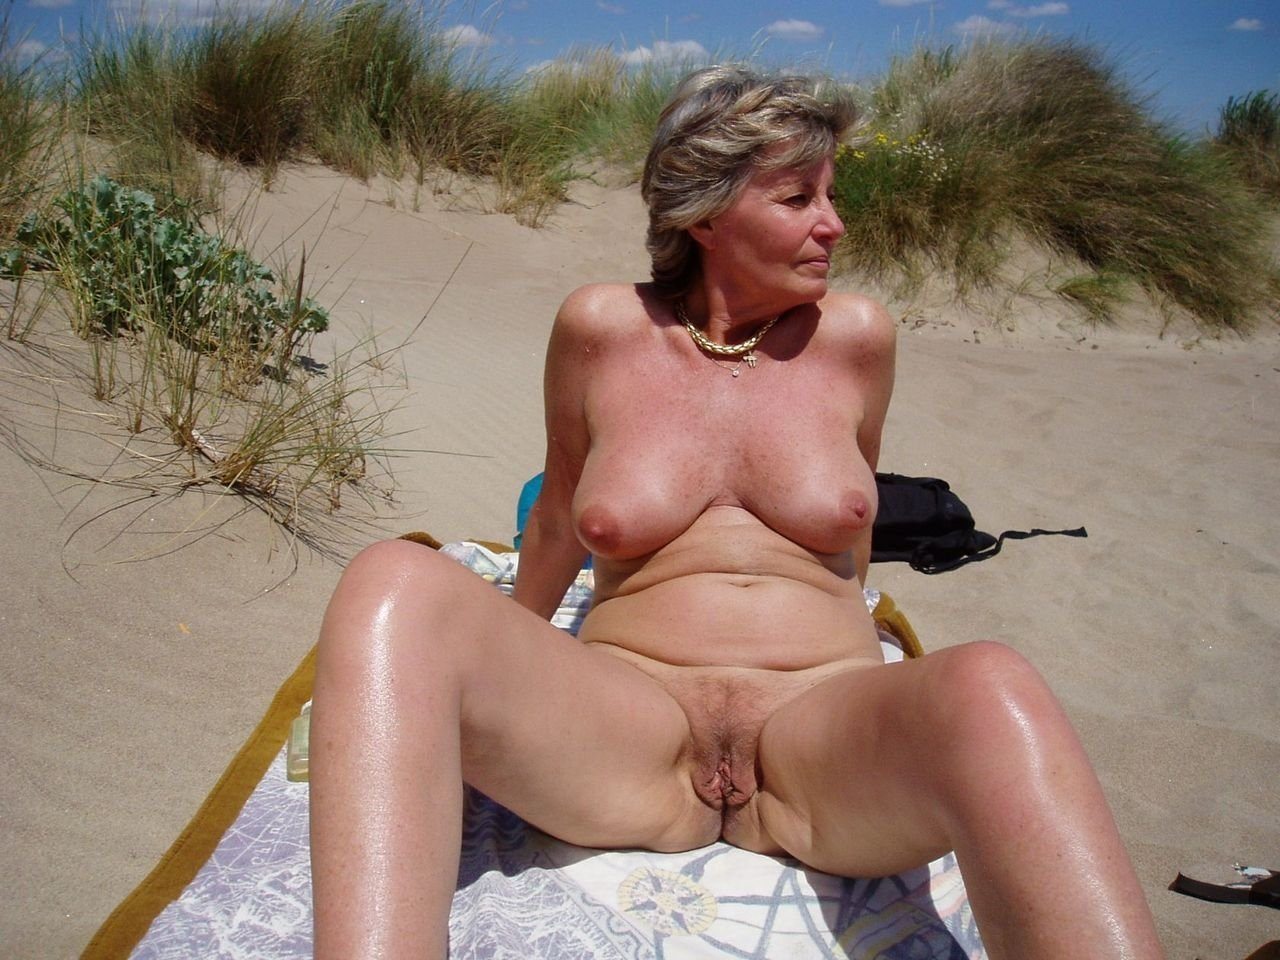 Mature Women Tied Up Outdoors